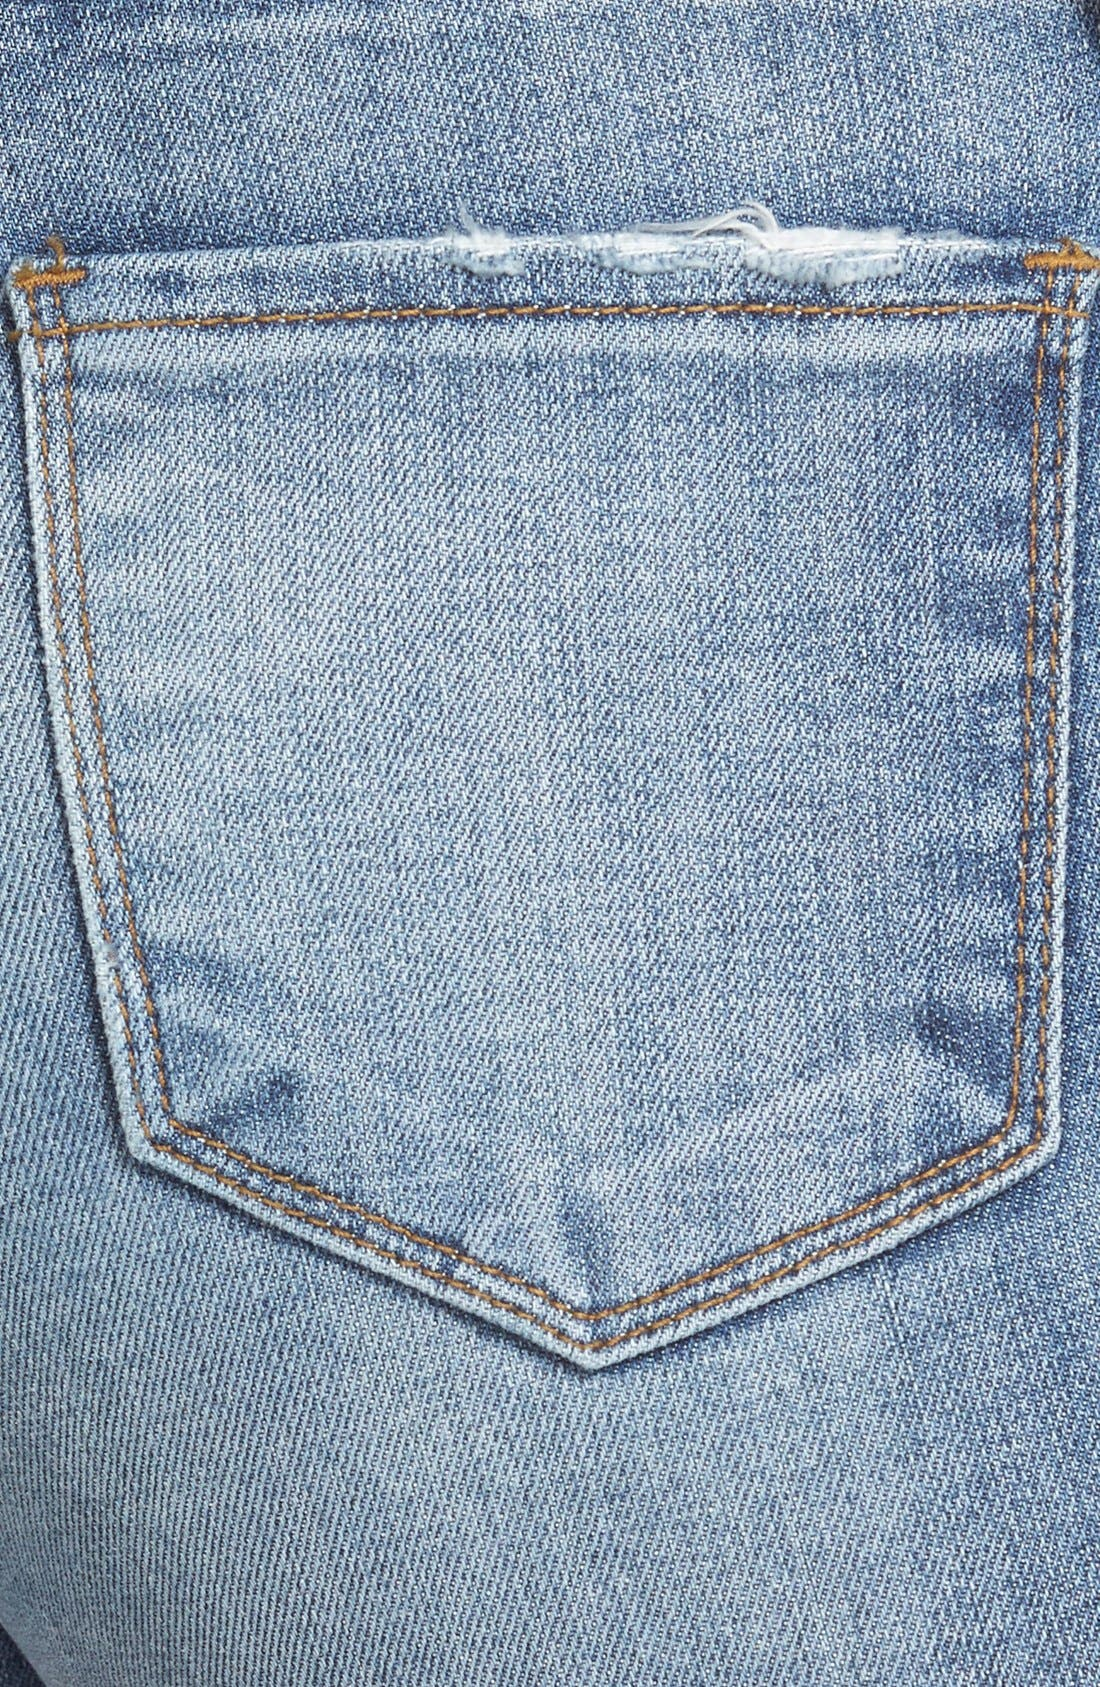 Alternate Image 3  - KUT from the Kloth 'Reese' Distressed Stretch Ankle Straight Leg Jeans (Fantastic)